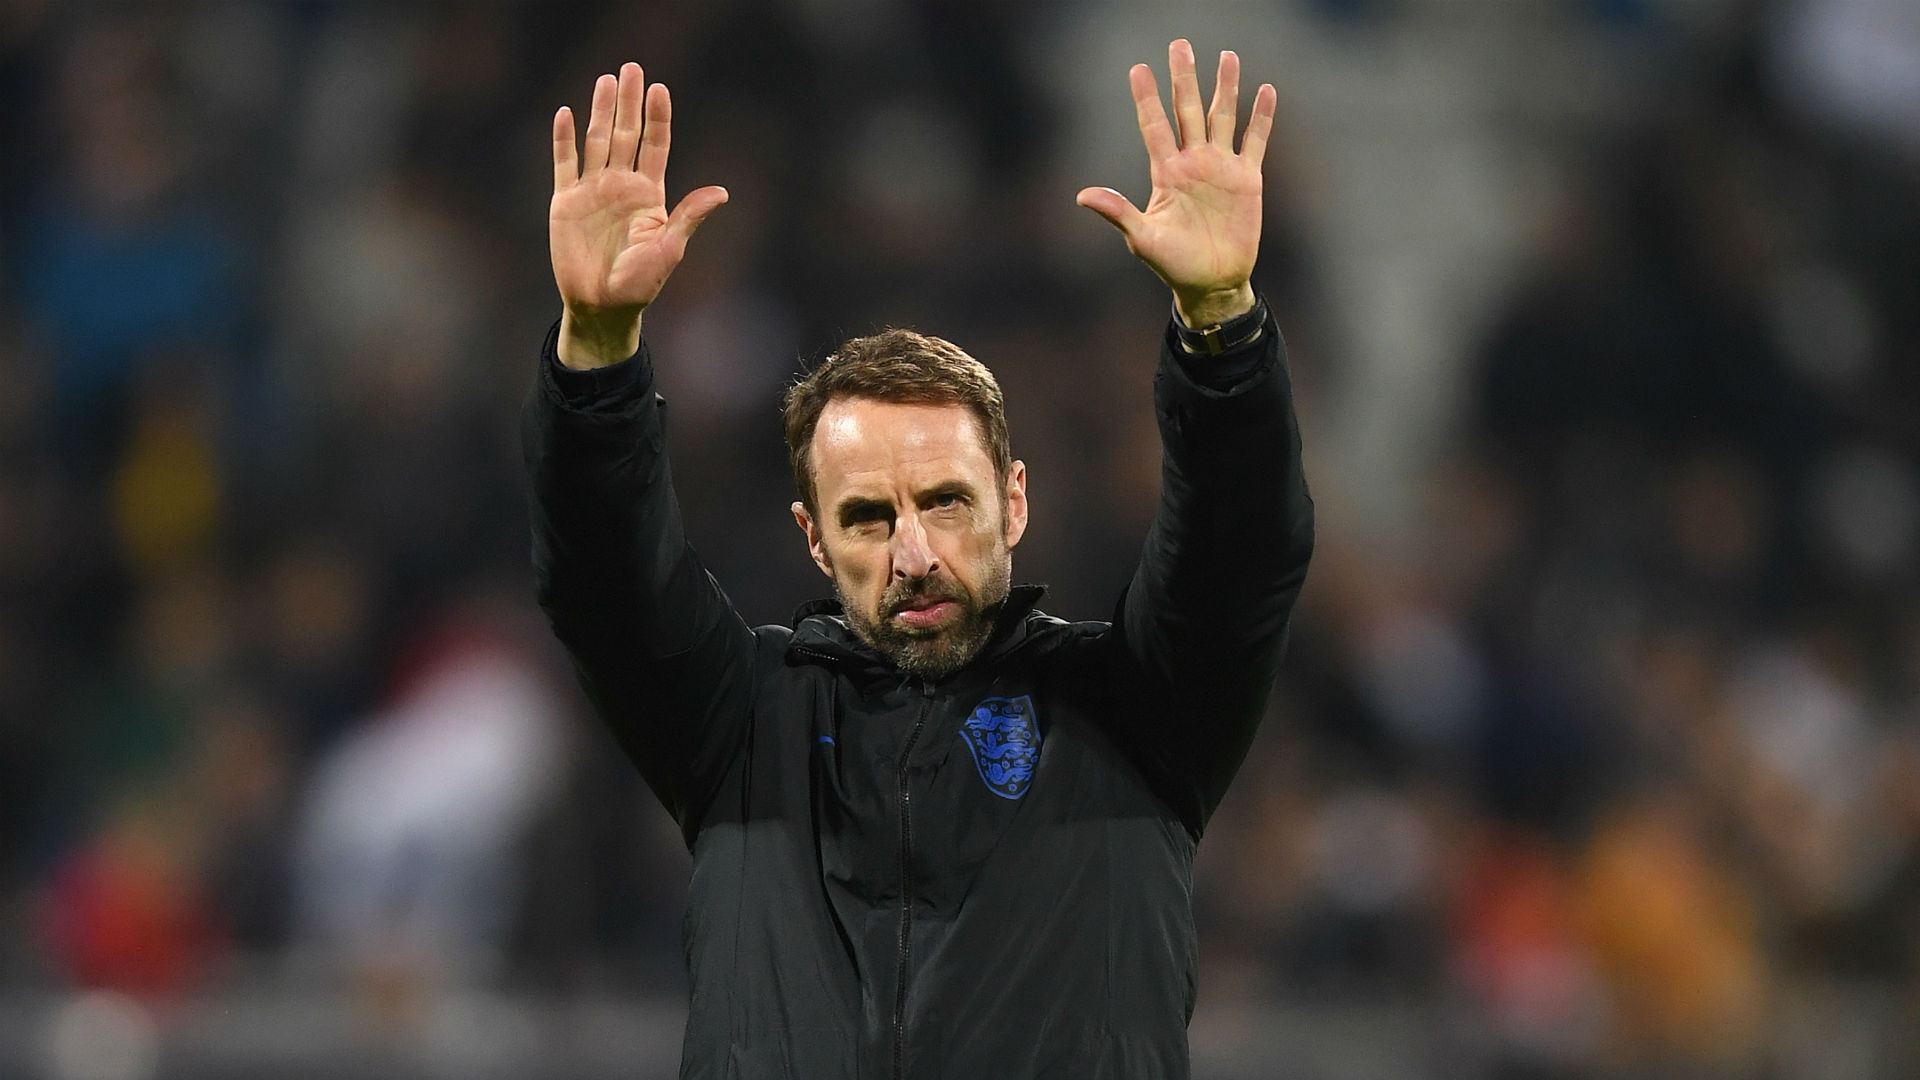 Southgate has no plans to quit England role ahead of 2022 World Cup